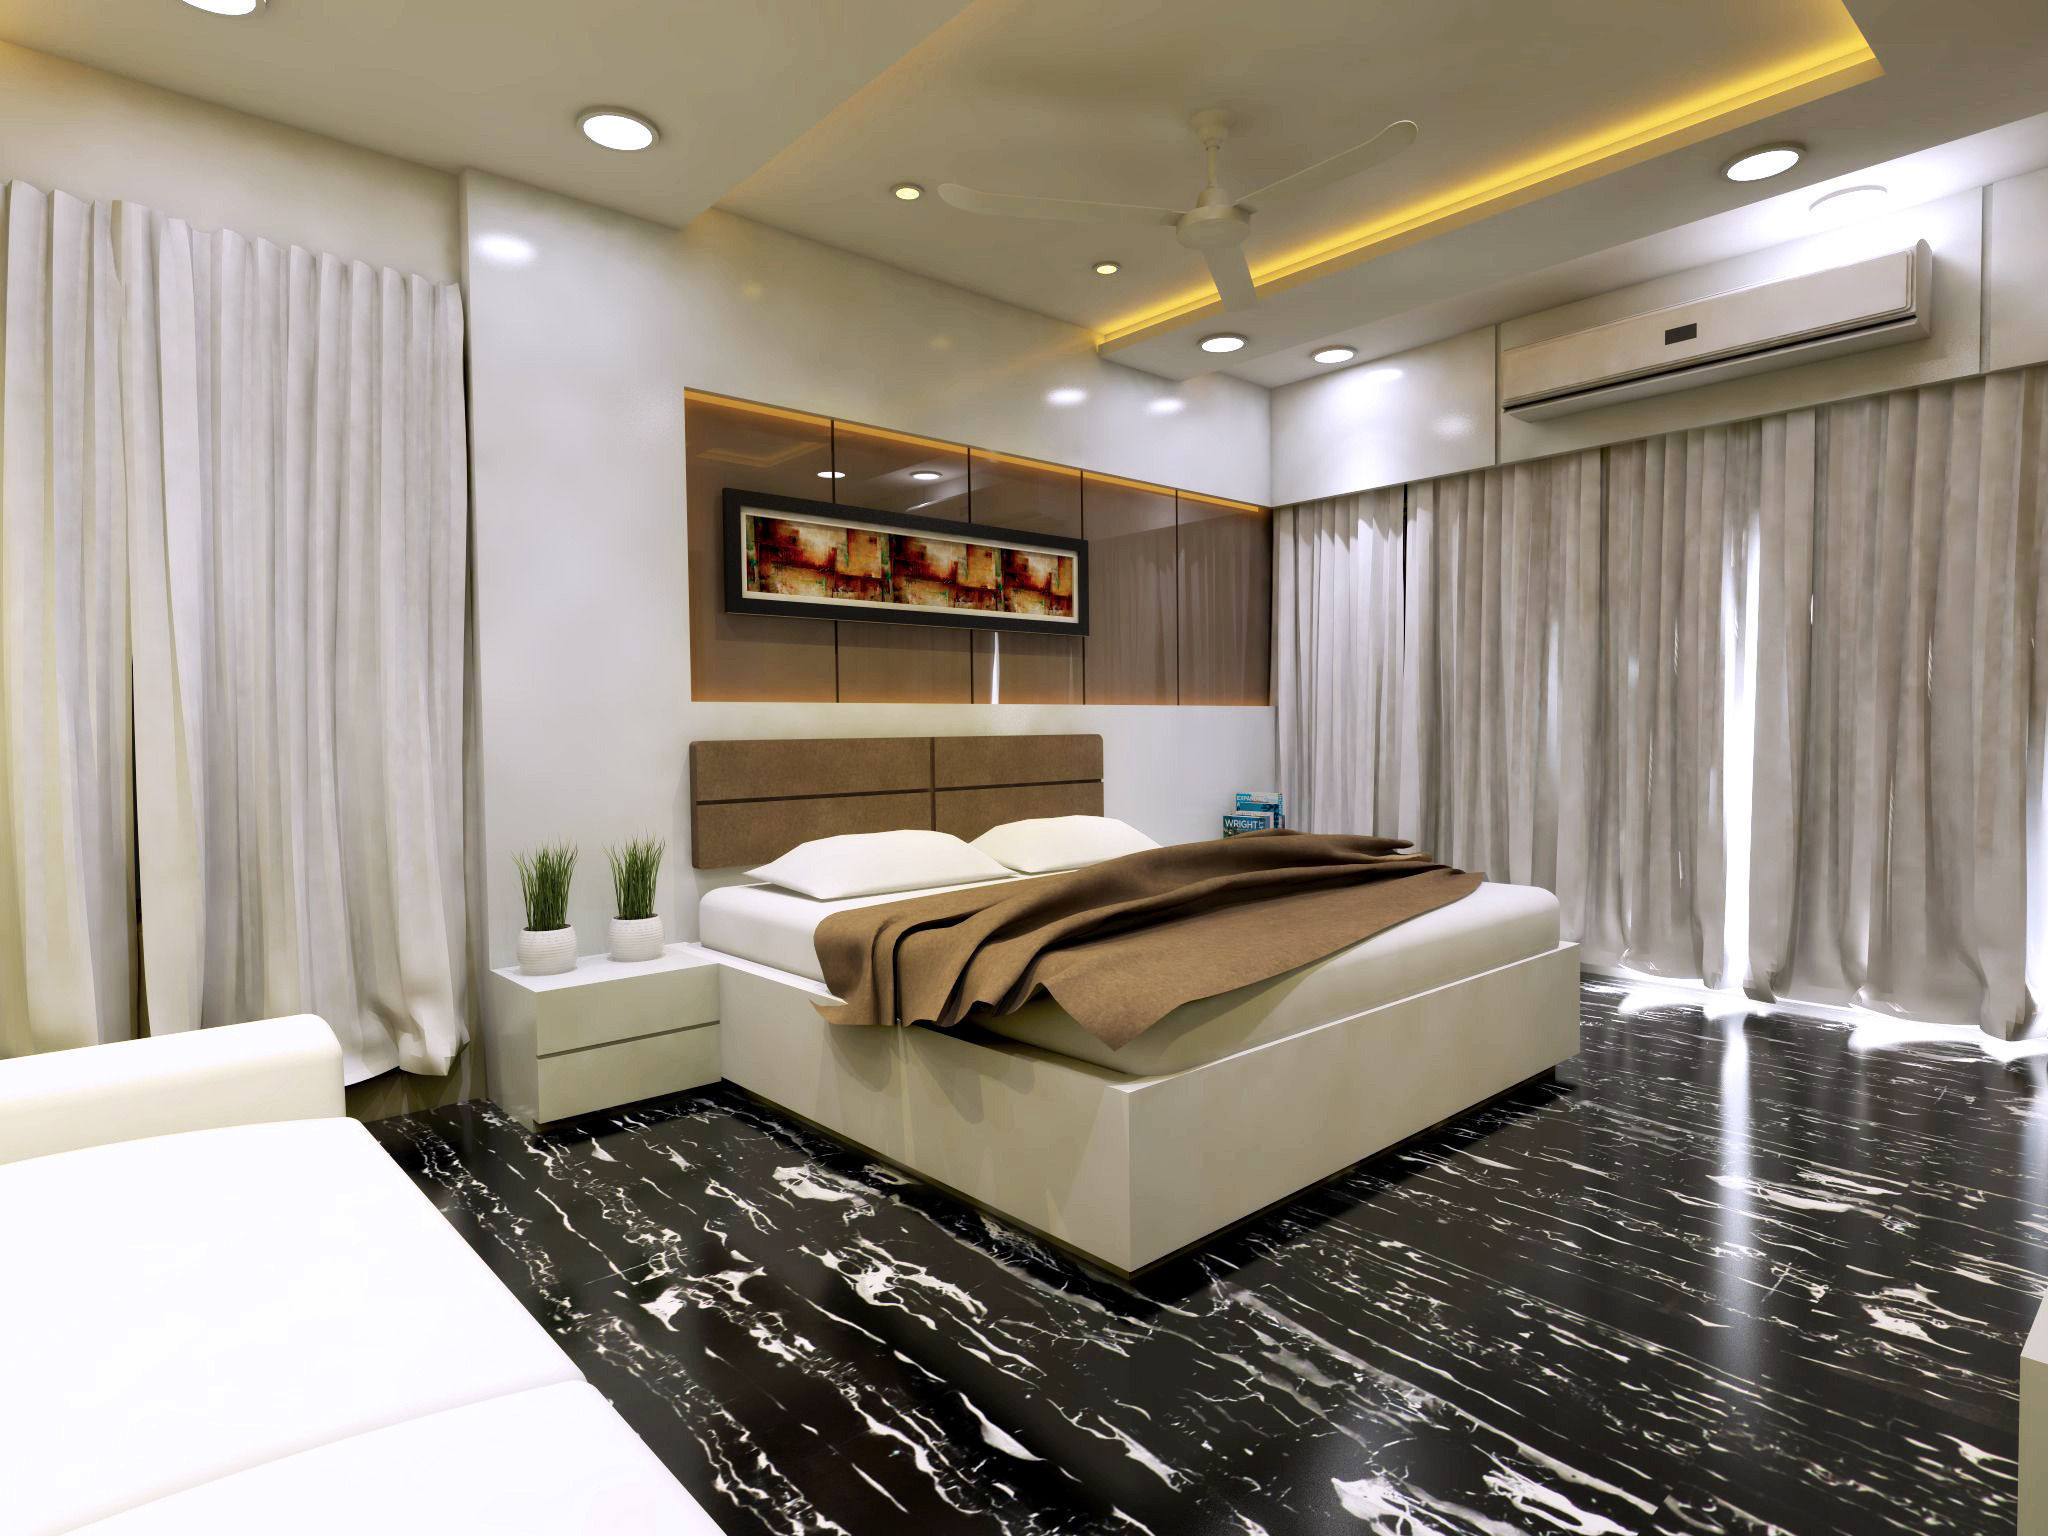 Modern Bedroom Interior Vray Rendered 3D model | CGTrader on Model Bedroom Ideas  id=72182